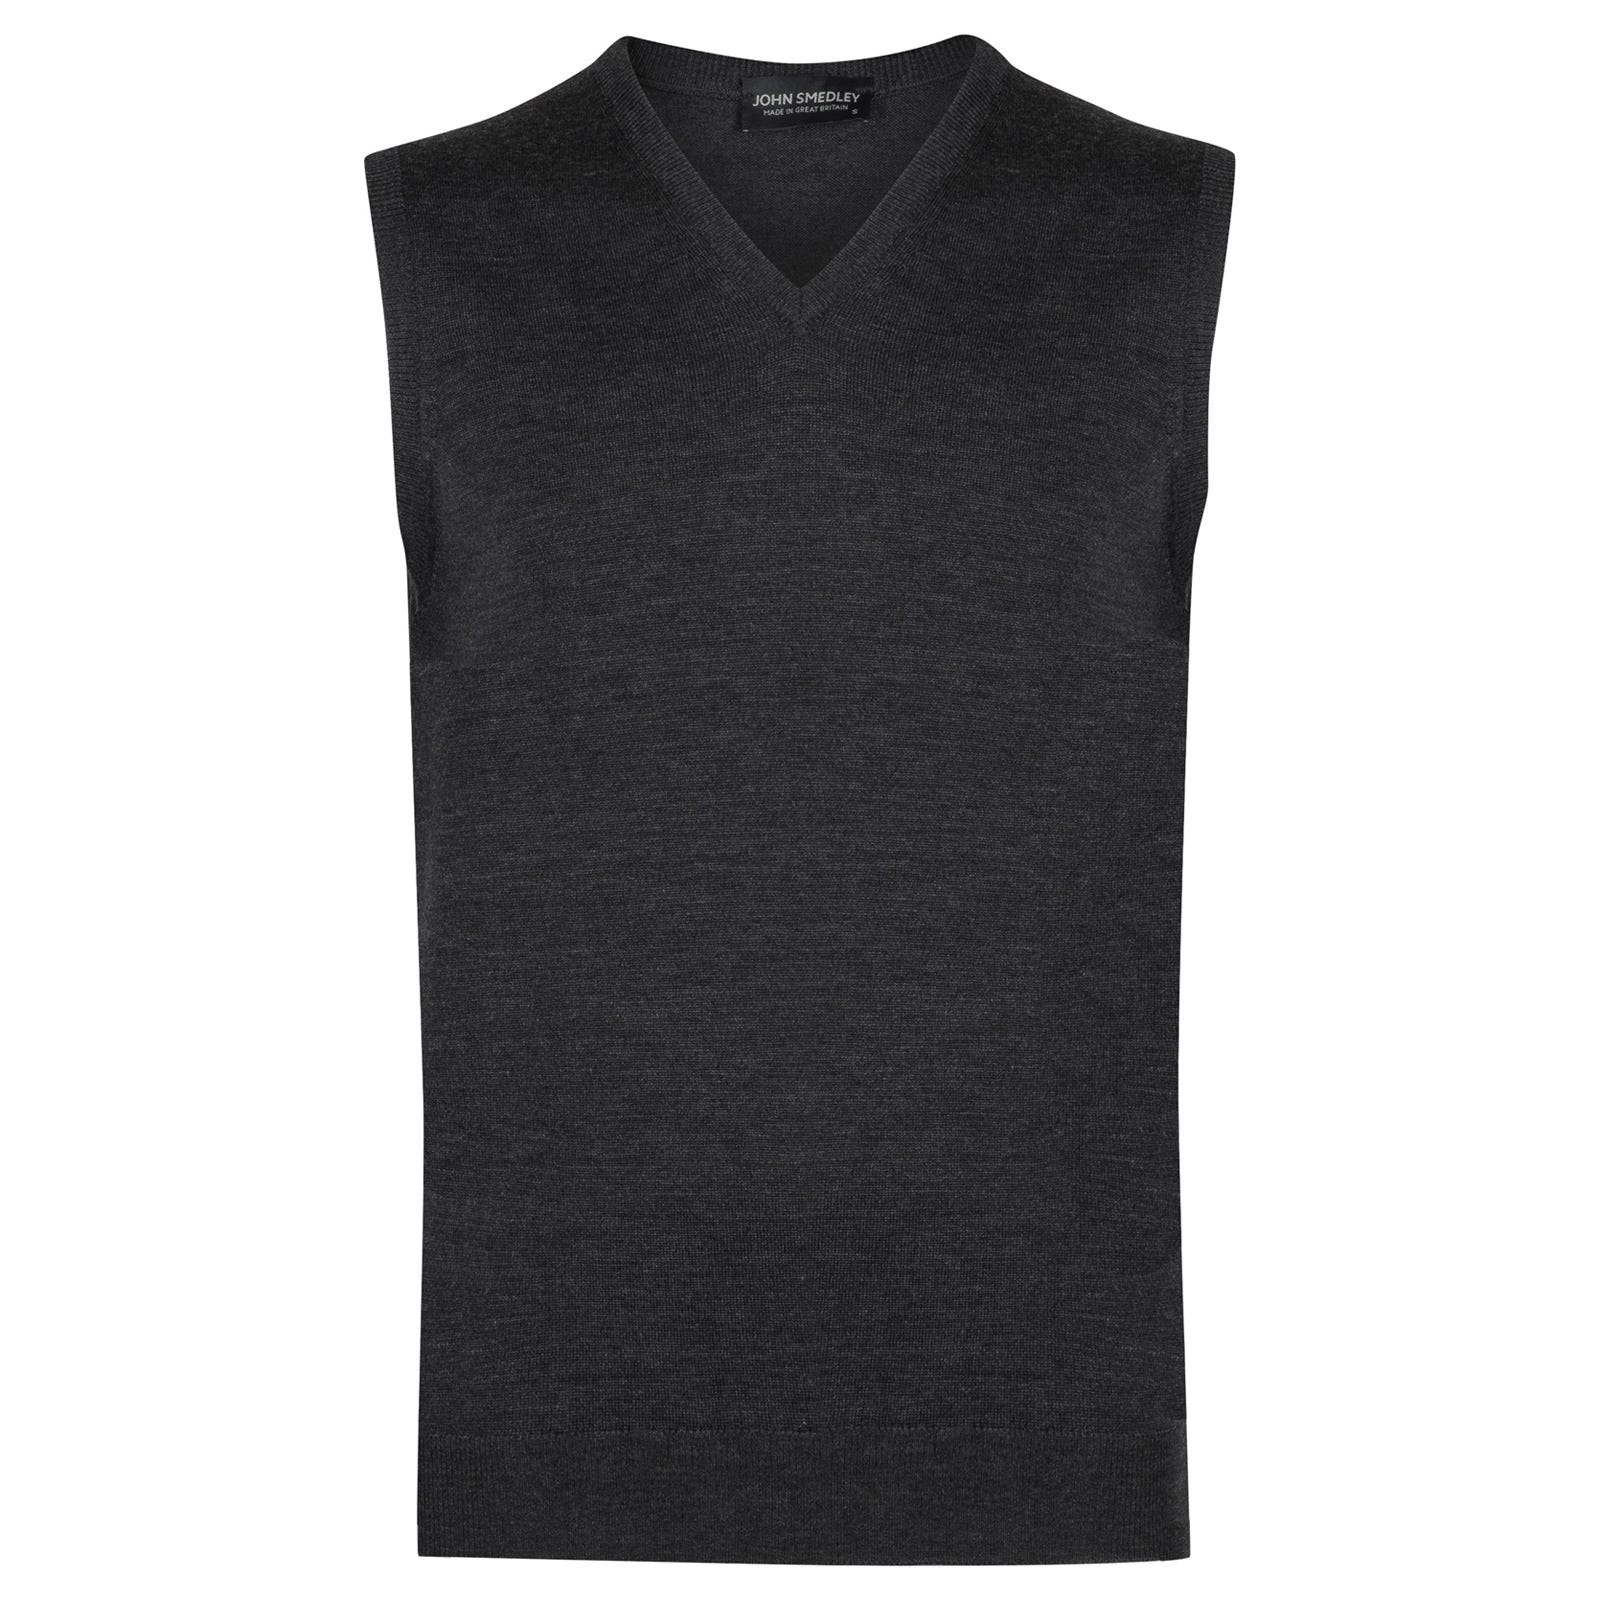 John Smedley hadfield Merino Wool Slipover in Charcoal-M